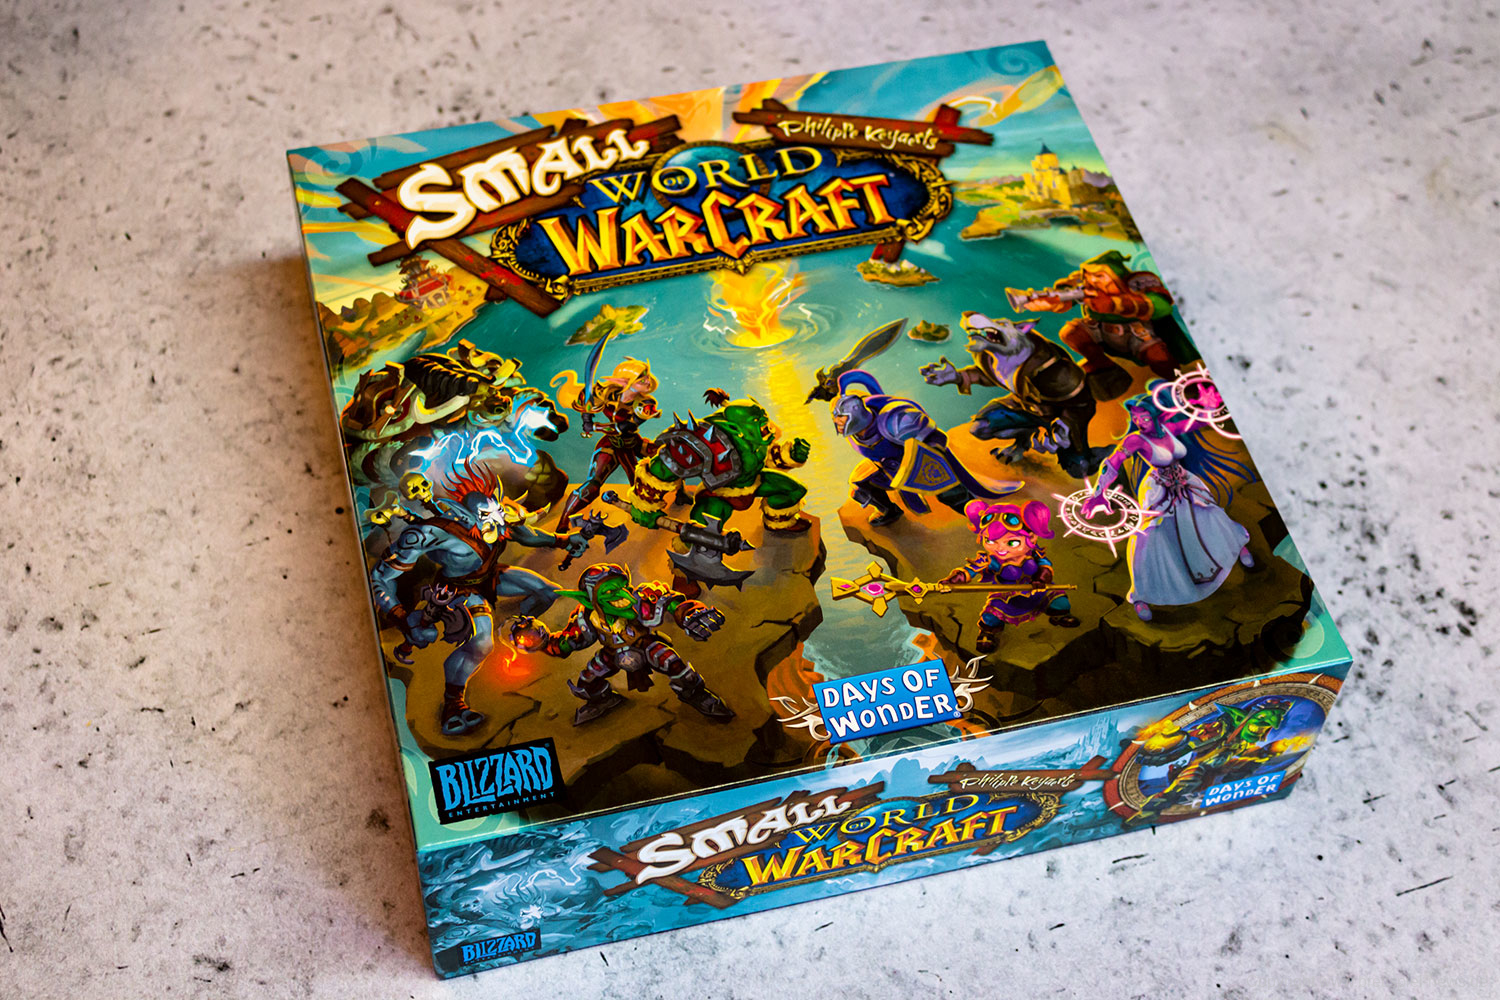 SMALL WORLD OF WARCRAFT // Bilder vom Spiel